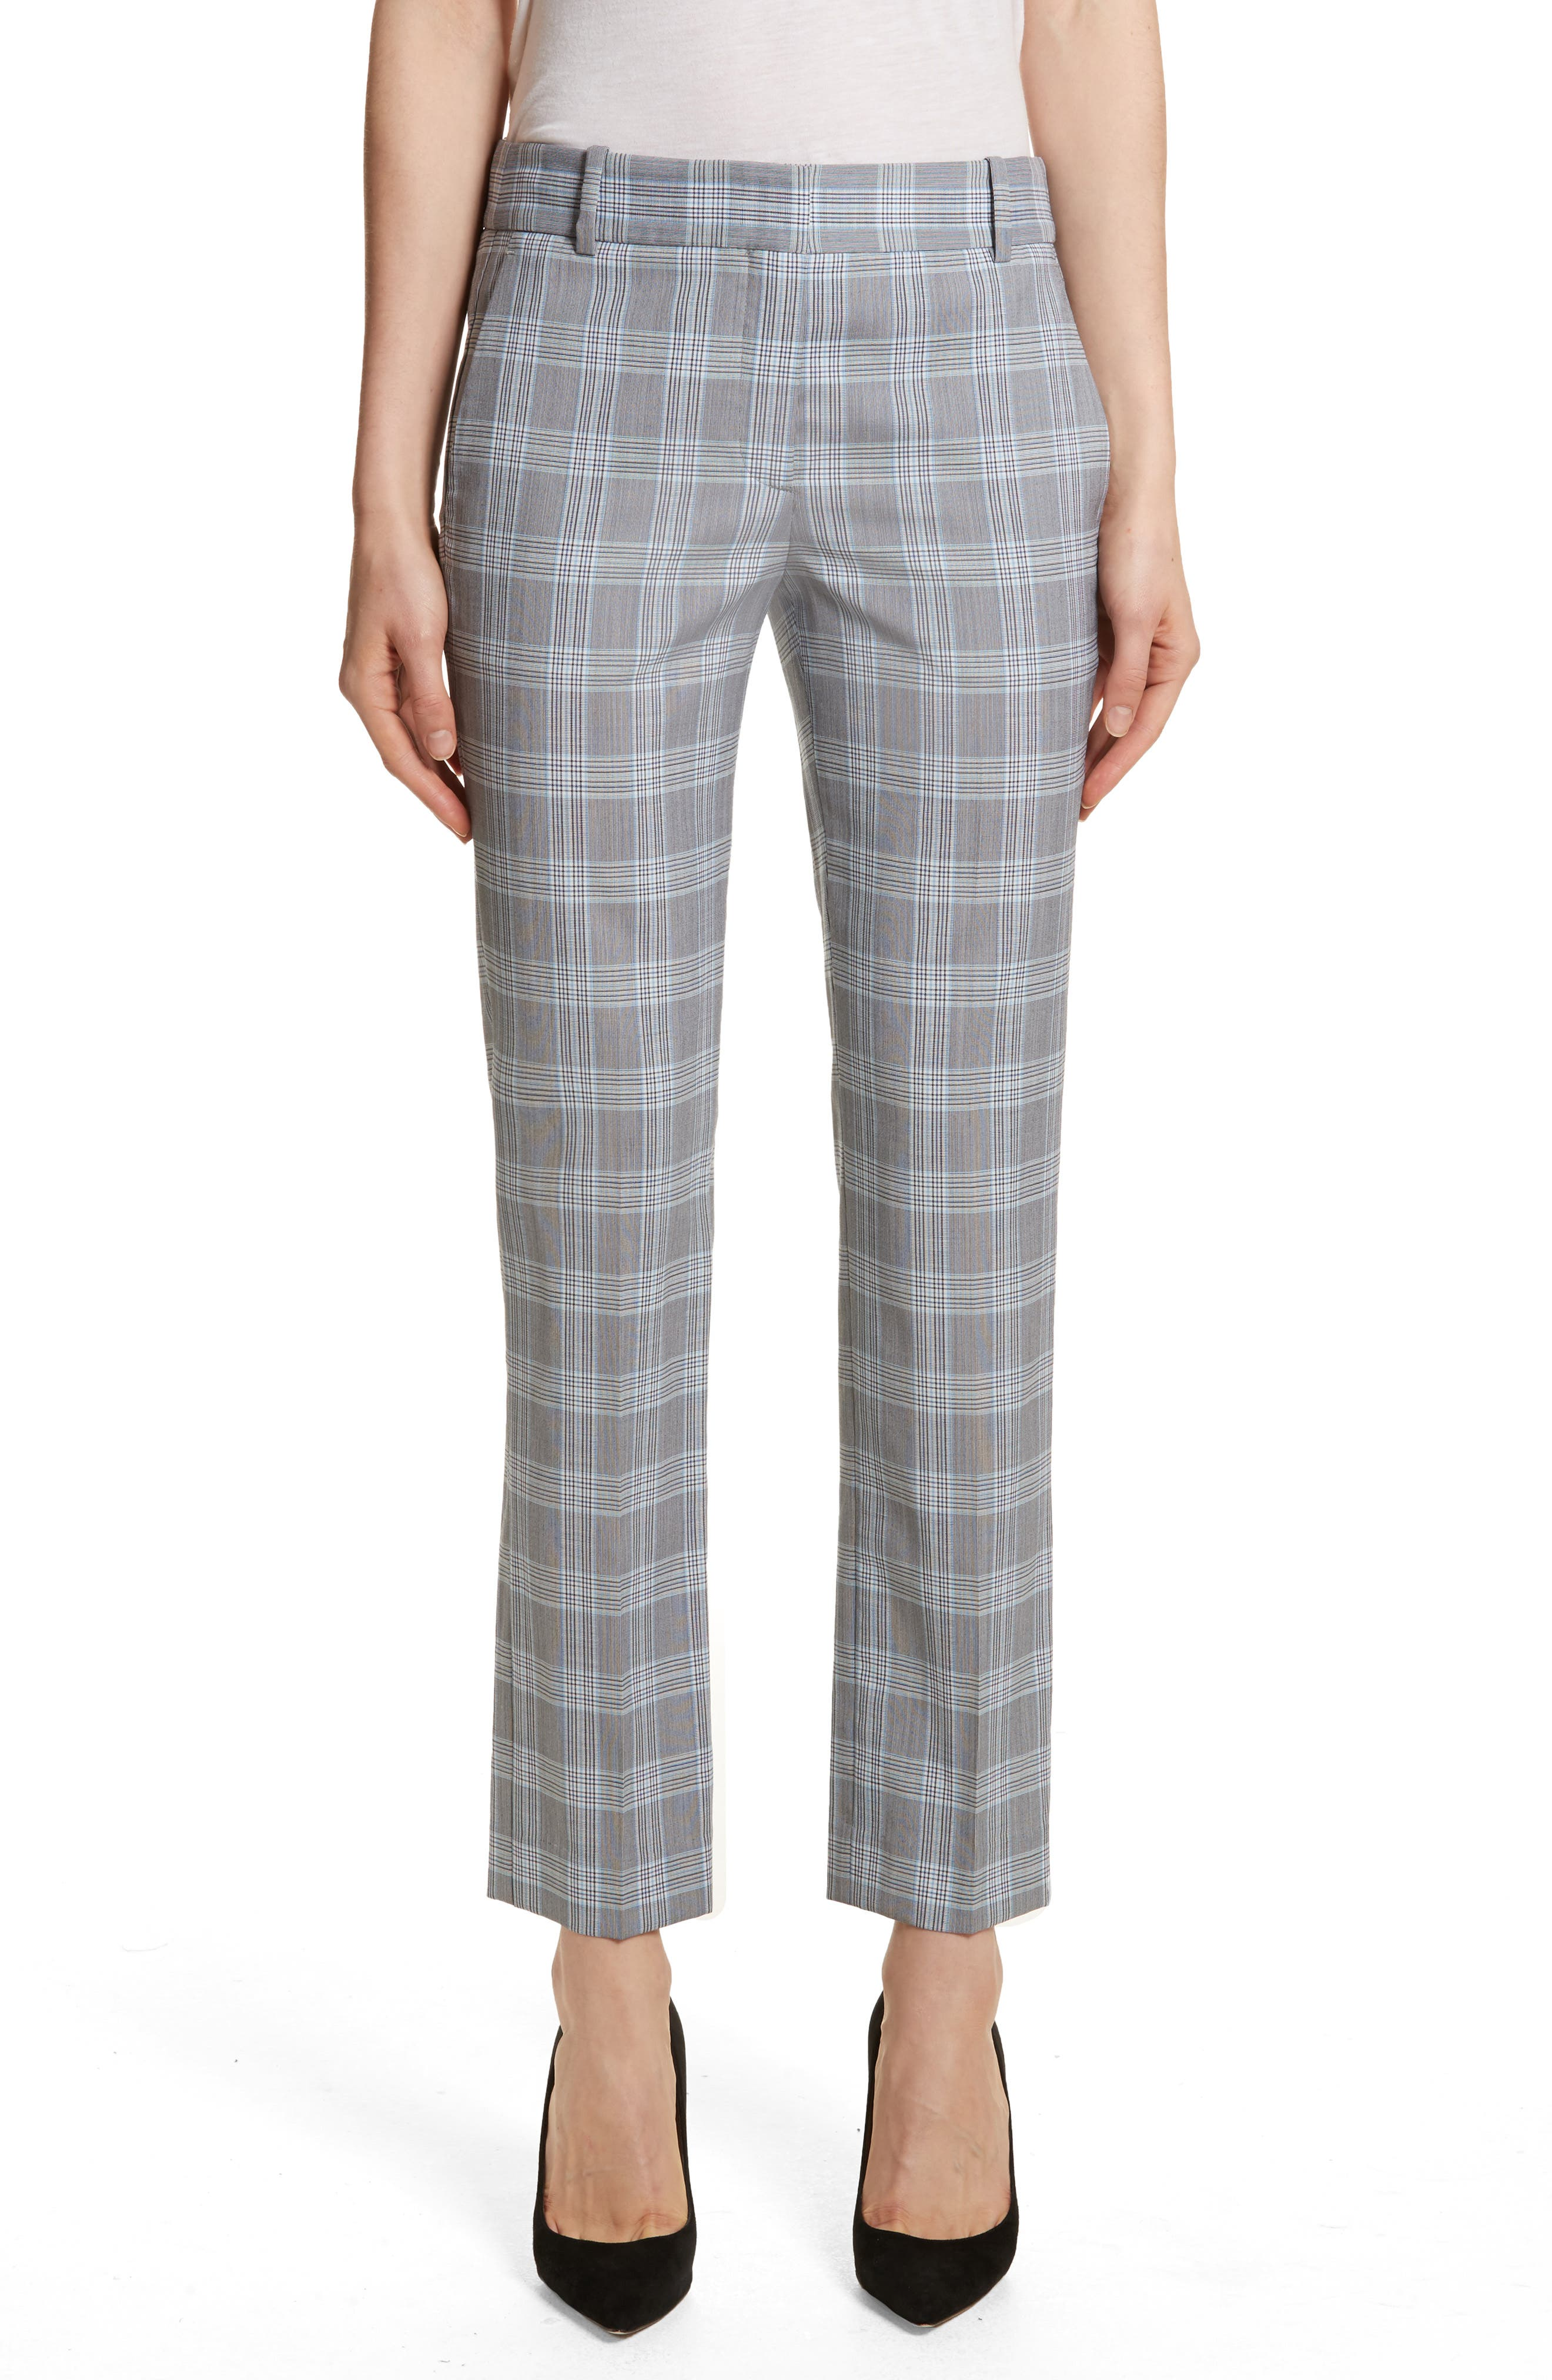 Maple Check 2 Straight Crop Trousers,                             Main thumbnail 1, color,                             White